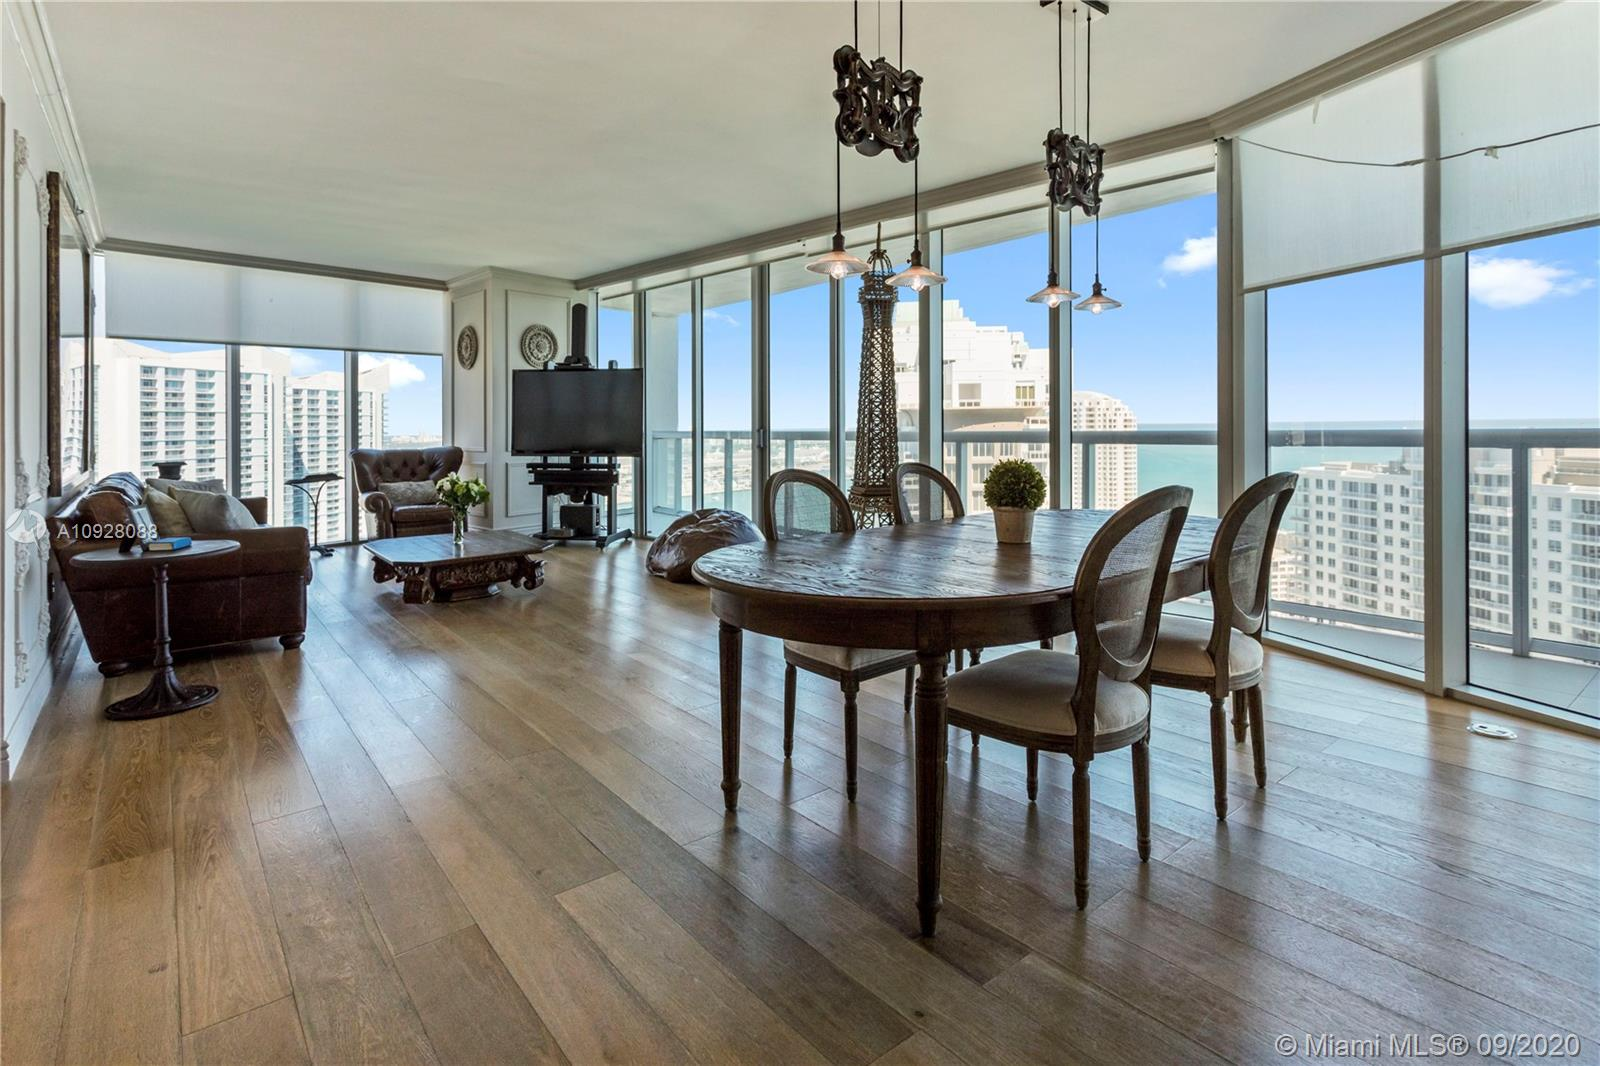 This highly upgraded 3/2.5 unit in the hip and luxurious Icon Brickell T1 designed by Philippe Stark feels more like a home than a condo. The 01-line is the largest and most desirable layout in the complex with gorgeous water views. This light filled corner unit features highest quality real wood floors, new doors, new laundry appliances, built-out closets, smart home gadgets and more. The building offers incredible amenities usually associated with a 5-star resort. It's surrounded by 2 parks, Biscayne Bay and Brickell Av, hosting 2 high-end restaurants - Cipriani and Cantina La Veinte. Located in the heart of the financial district, Icon Brickell is only 5-10 min walk to Brickell City Center, Whole Foods, Publix, restaurants, movie theaters and other entertainment venues. Also for rent.